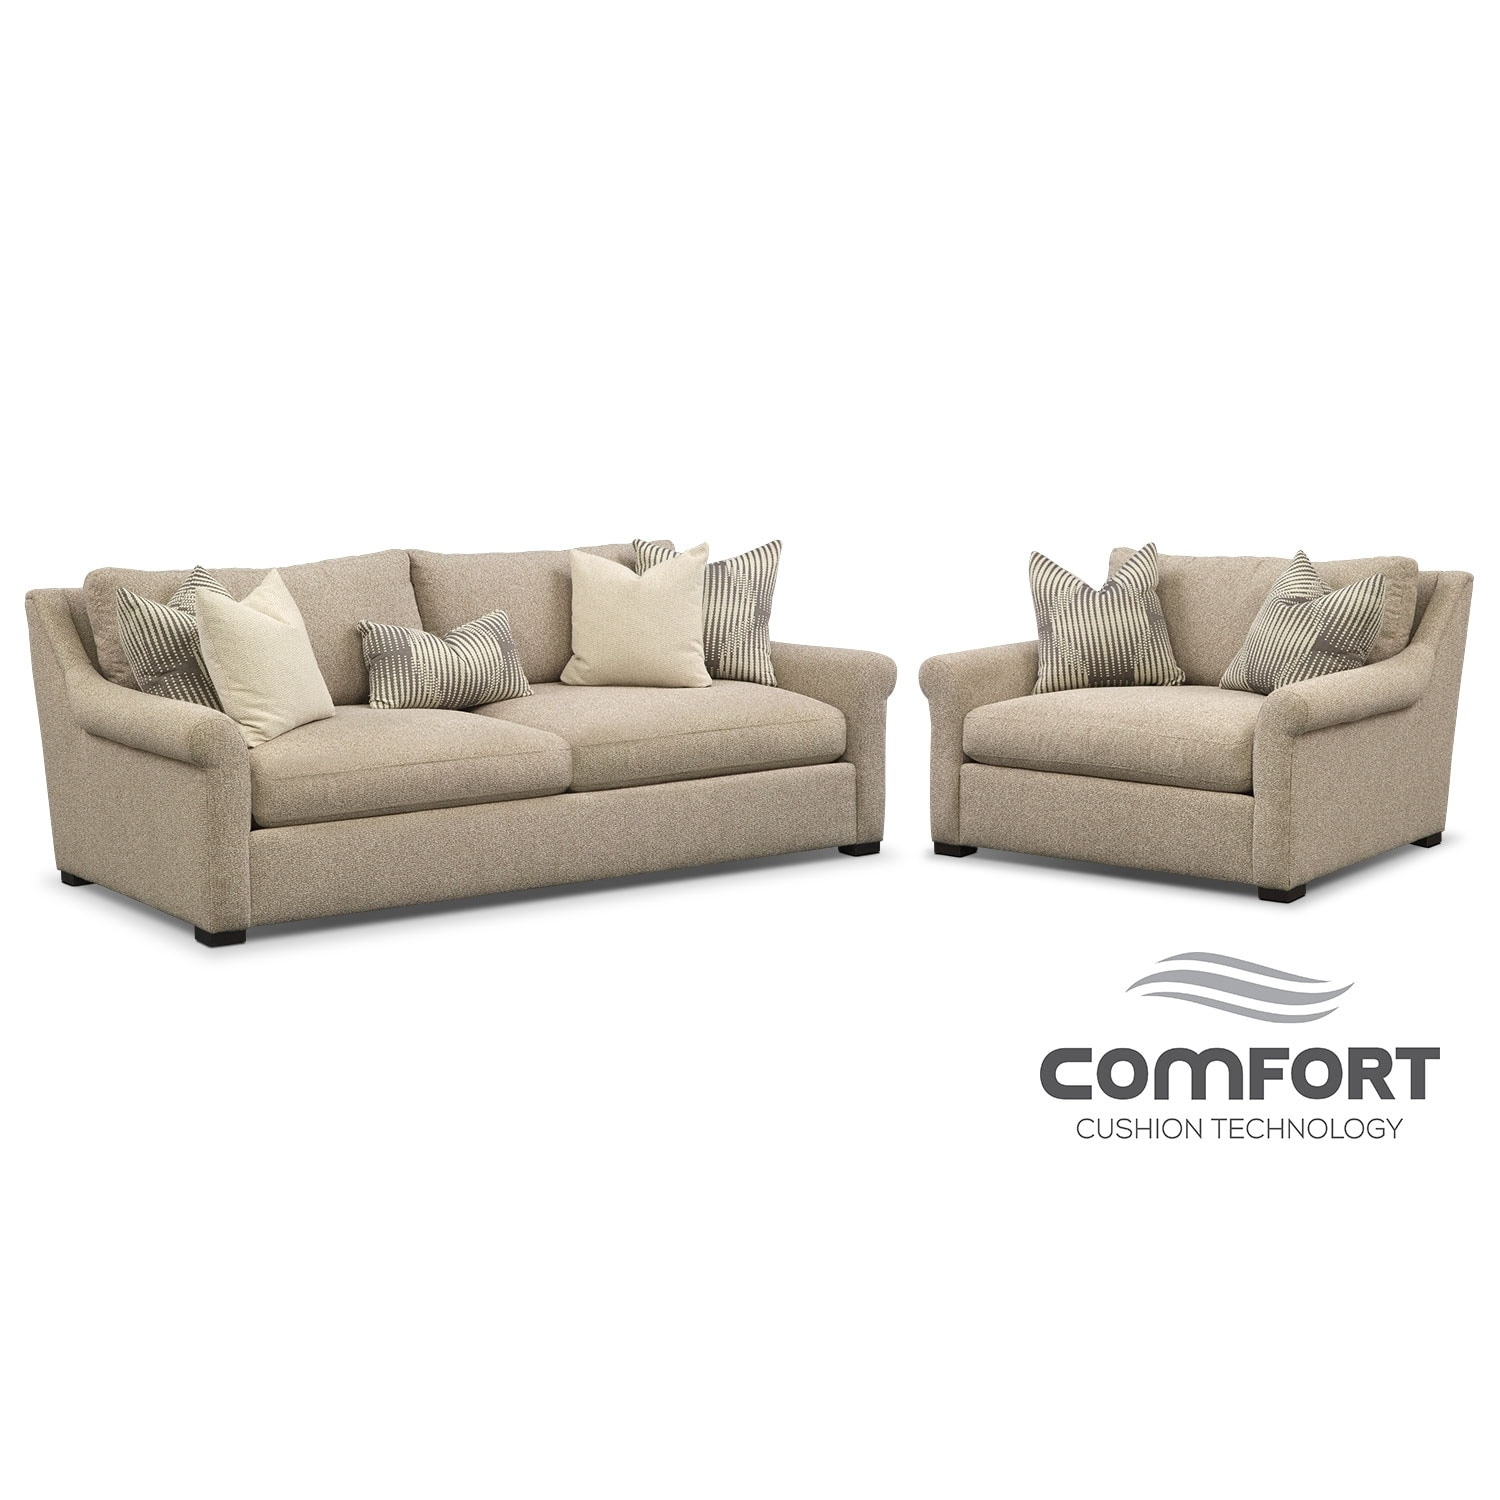 Living Room Furniture - Robertson Comfort 2 Pc. Living Room Package w/ Chair